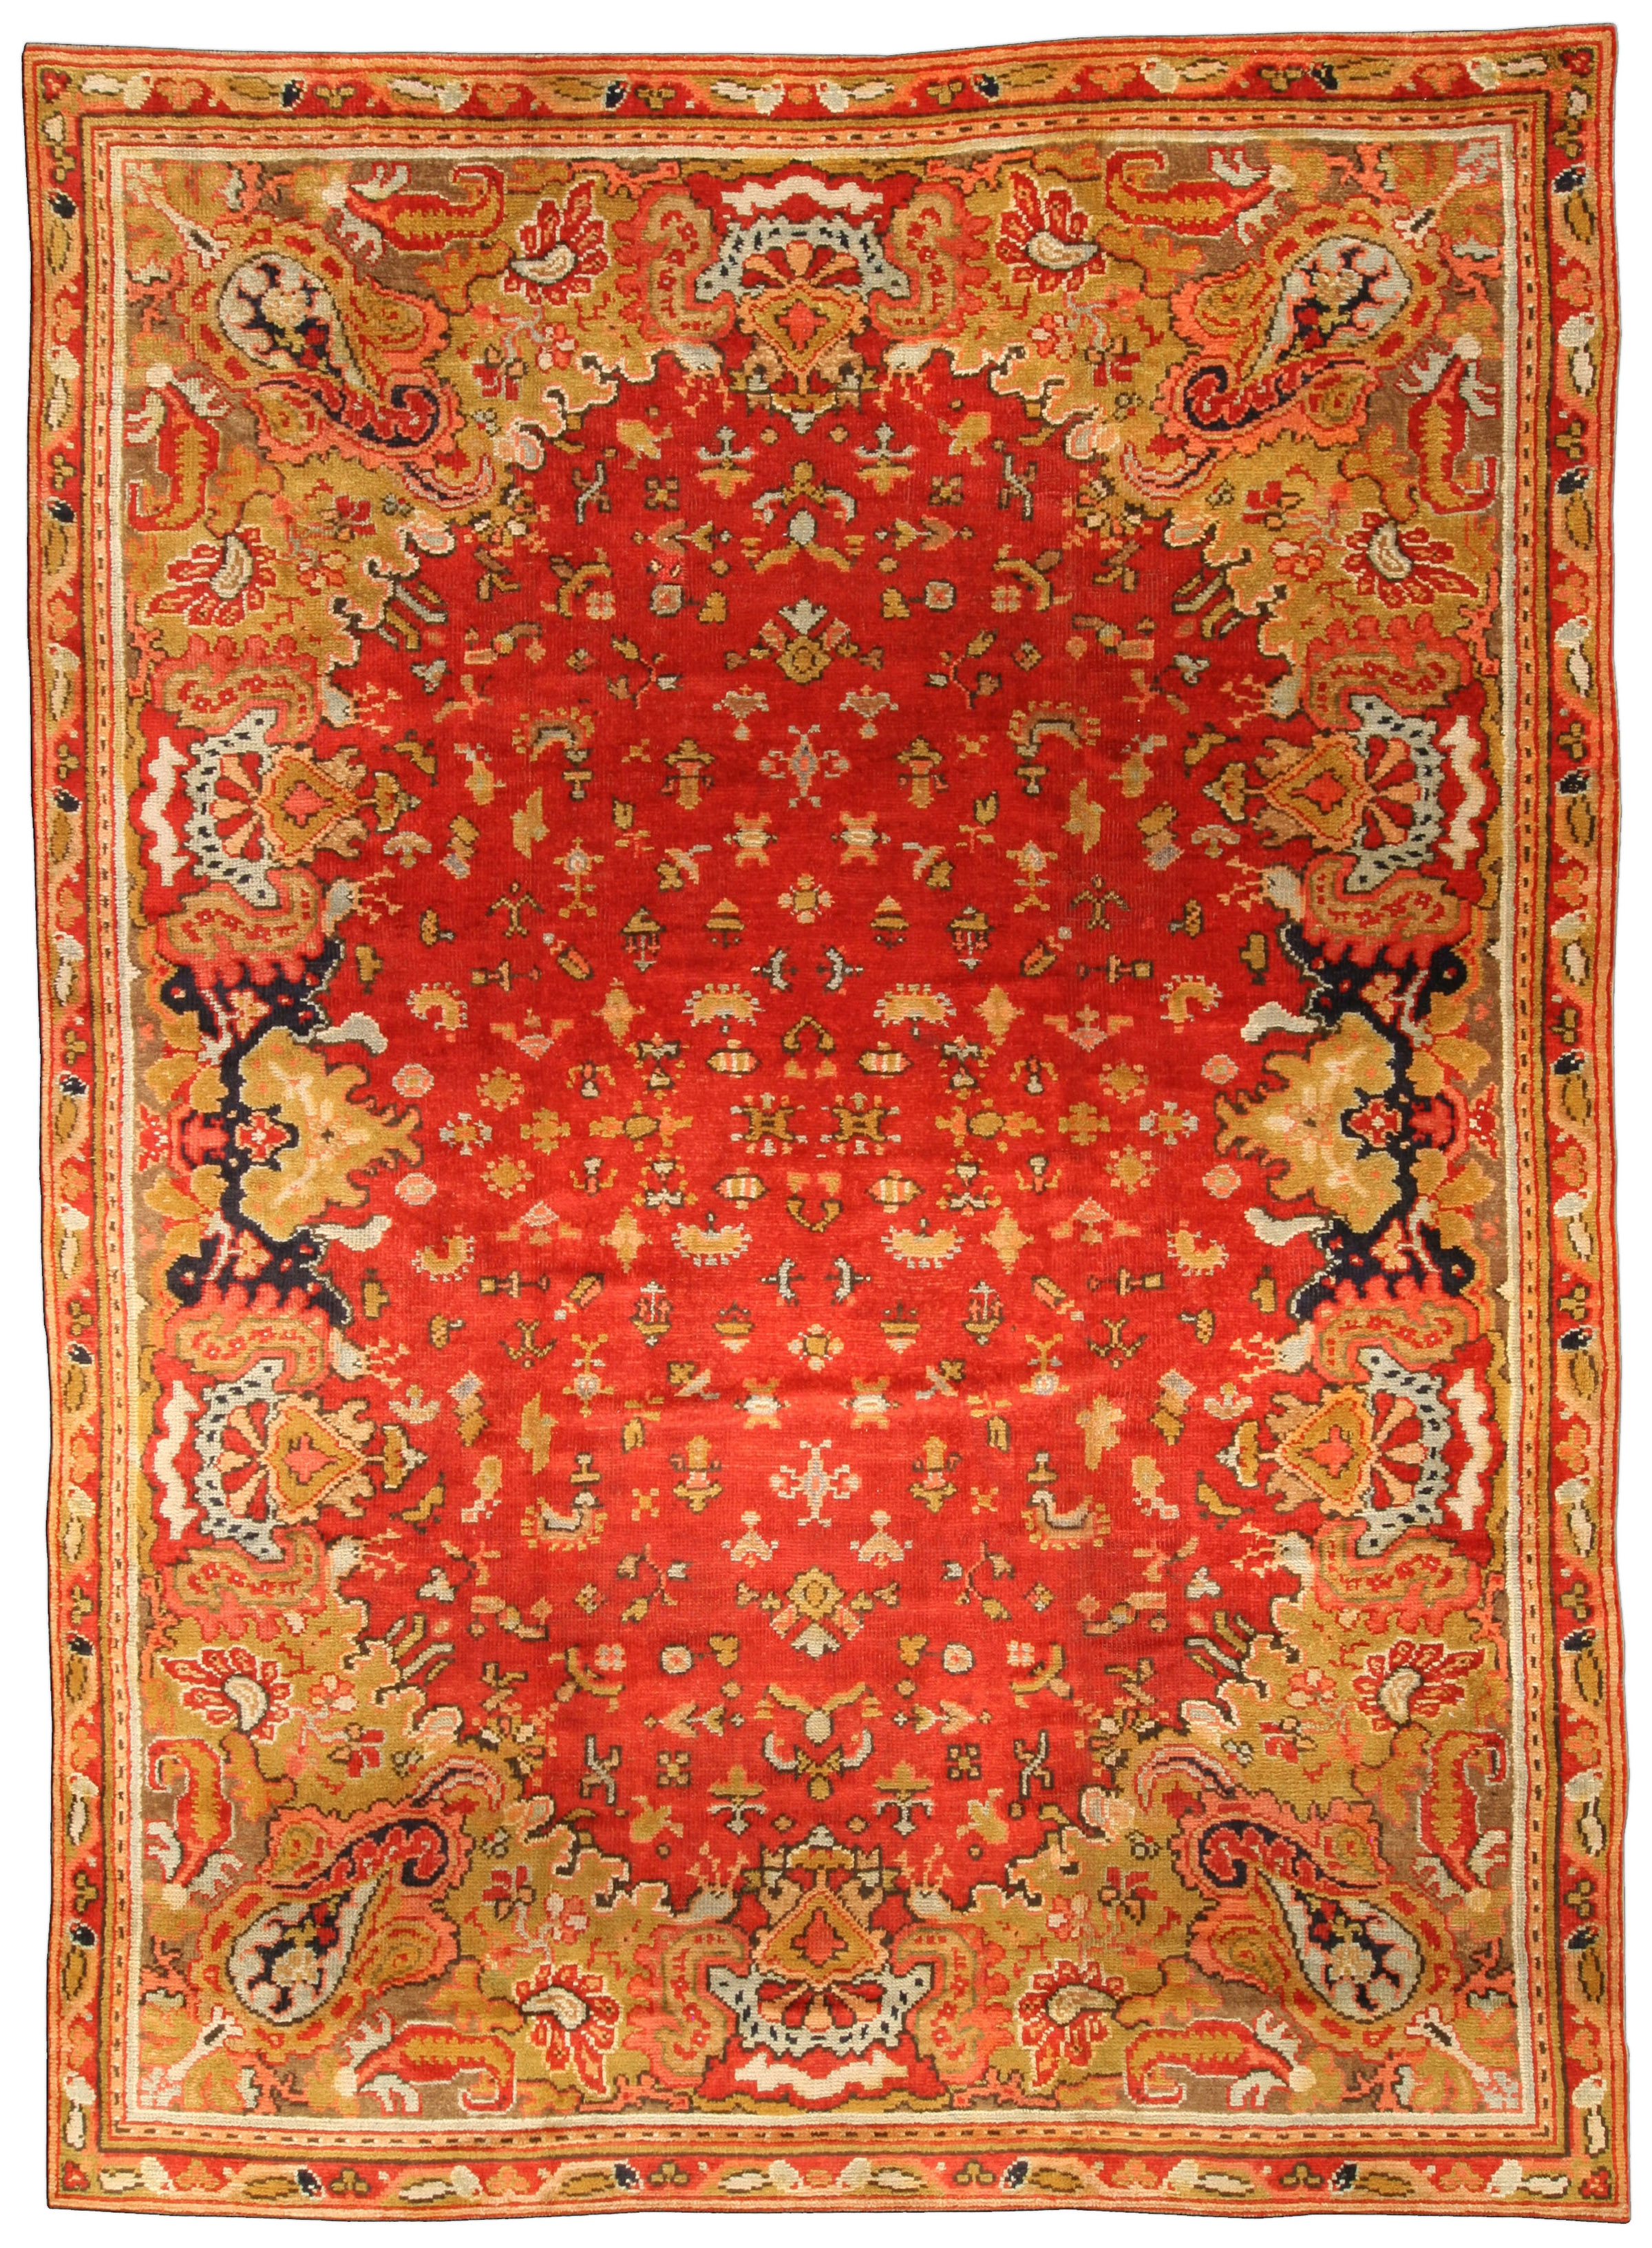 Antique English Axminster Carpet BB0749